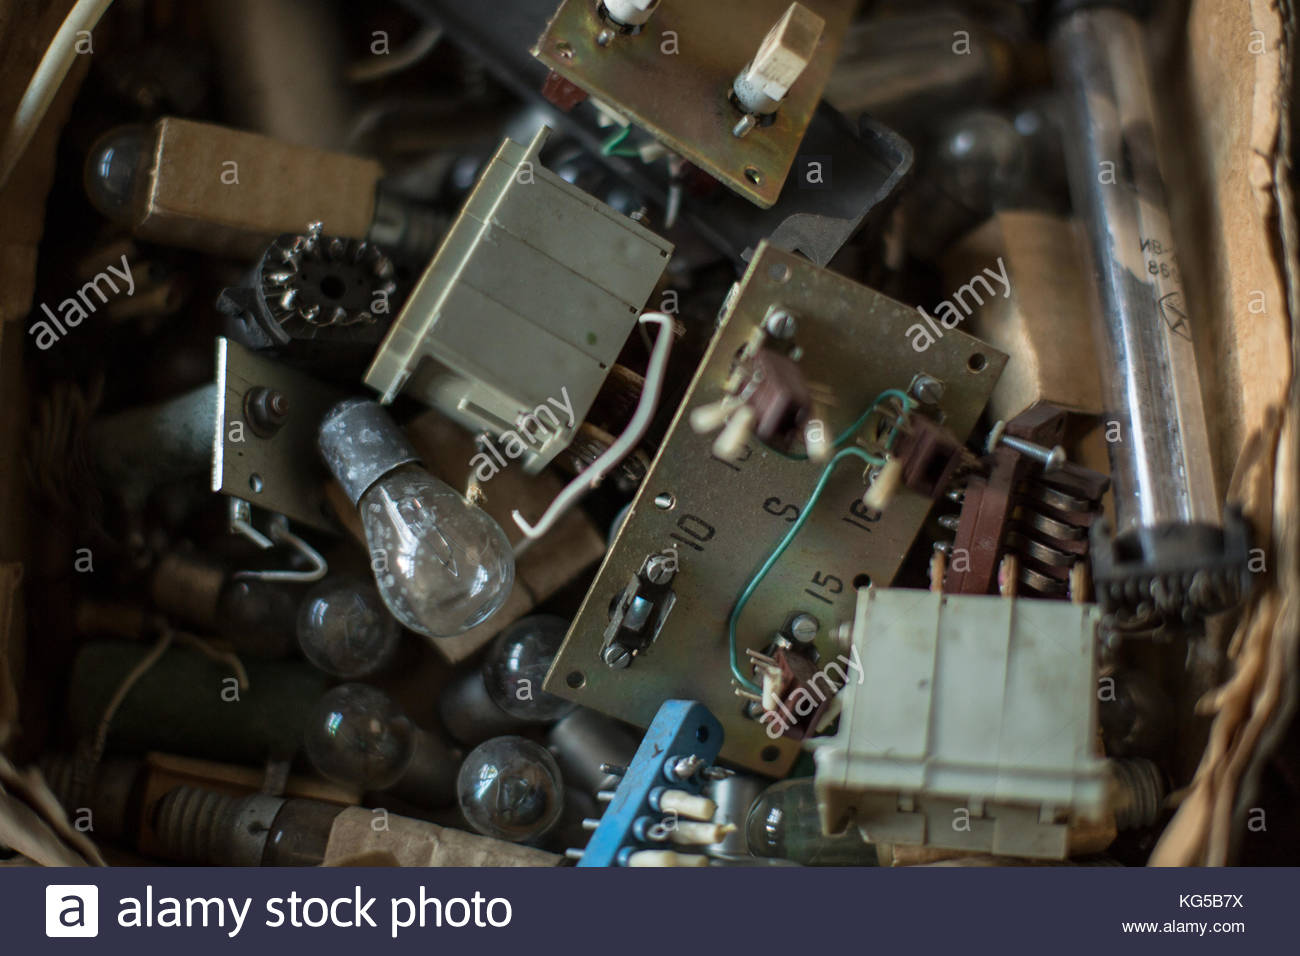 Computer chips background - Stock Image